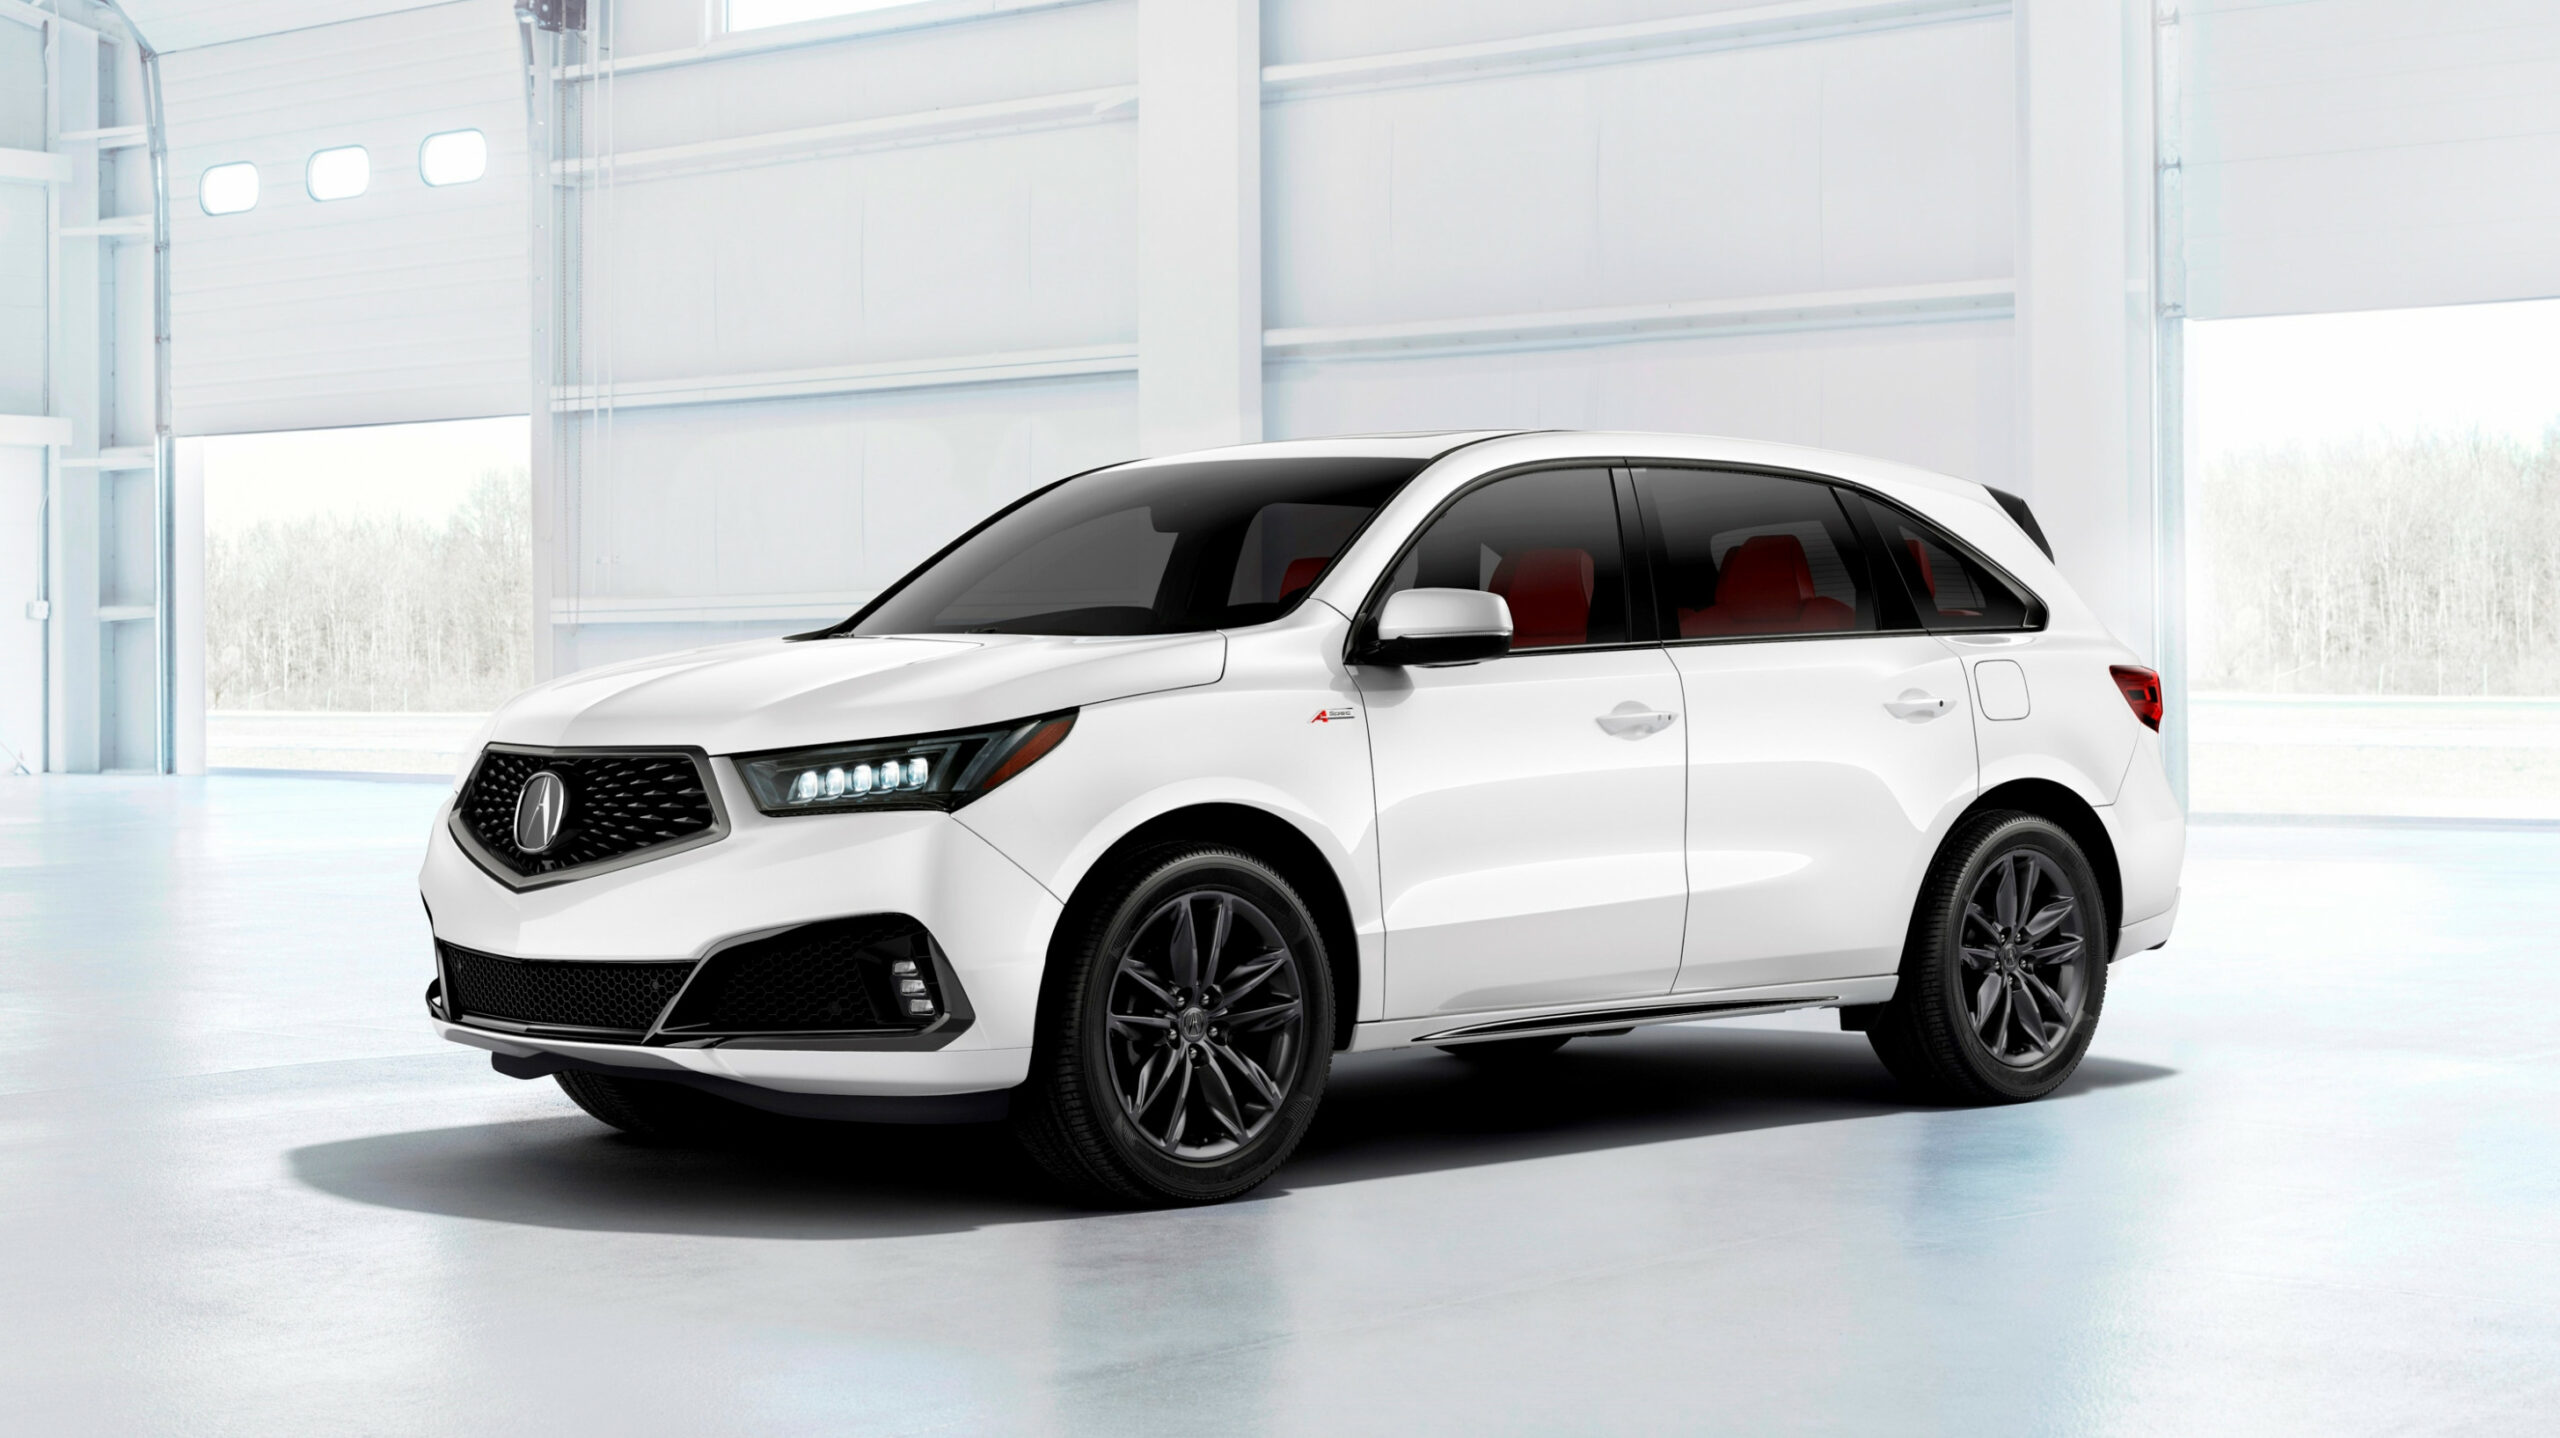 Reminder: Acura Is Working On A Turbo V-6 Engine And Type S Models ..